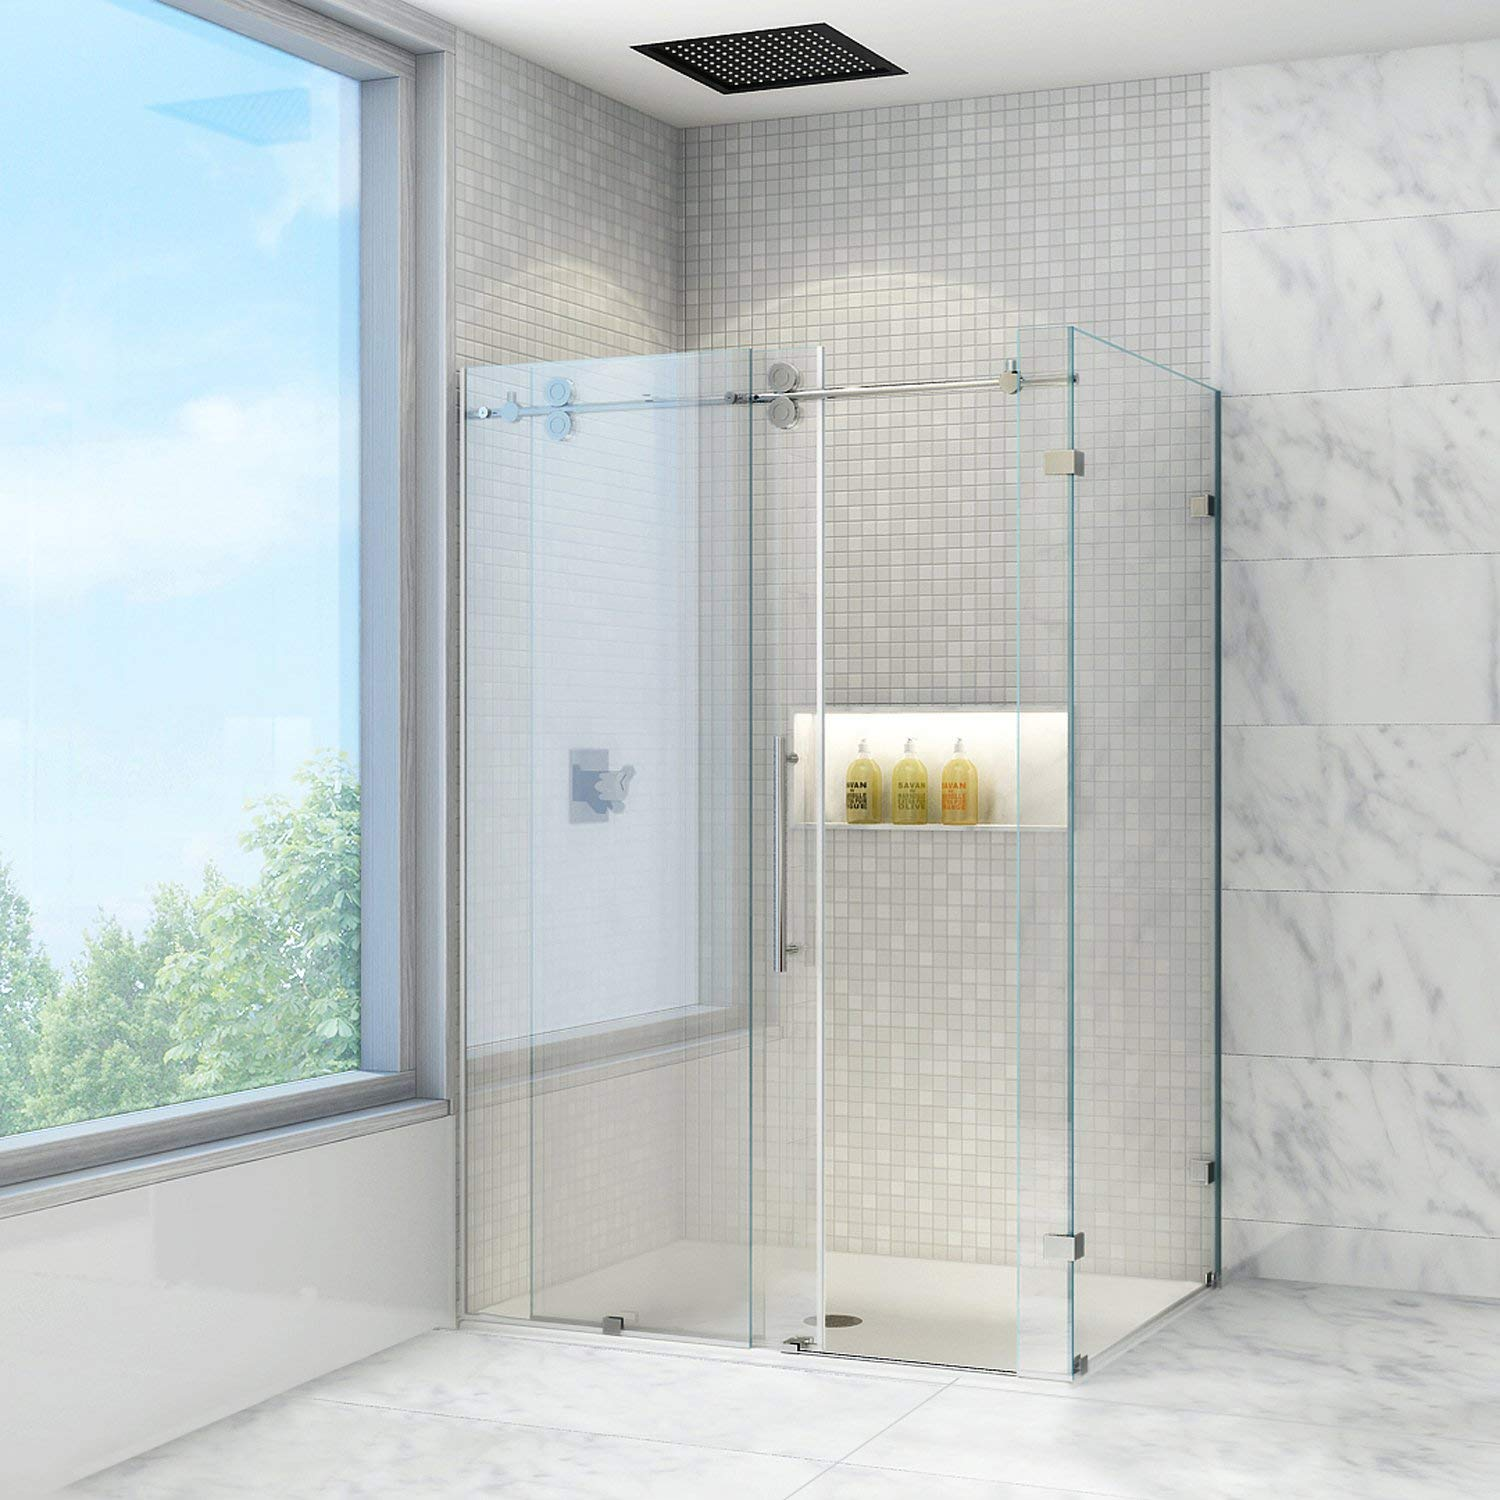 VIGO Winslow 36 x 60-in. Frameless Sliding Shower Enclosure